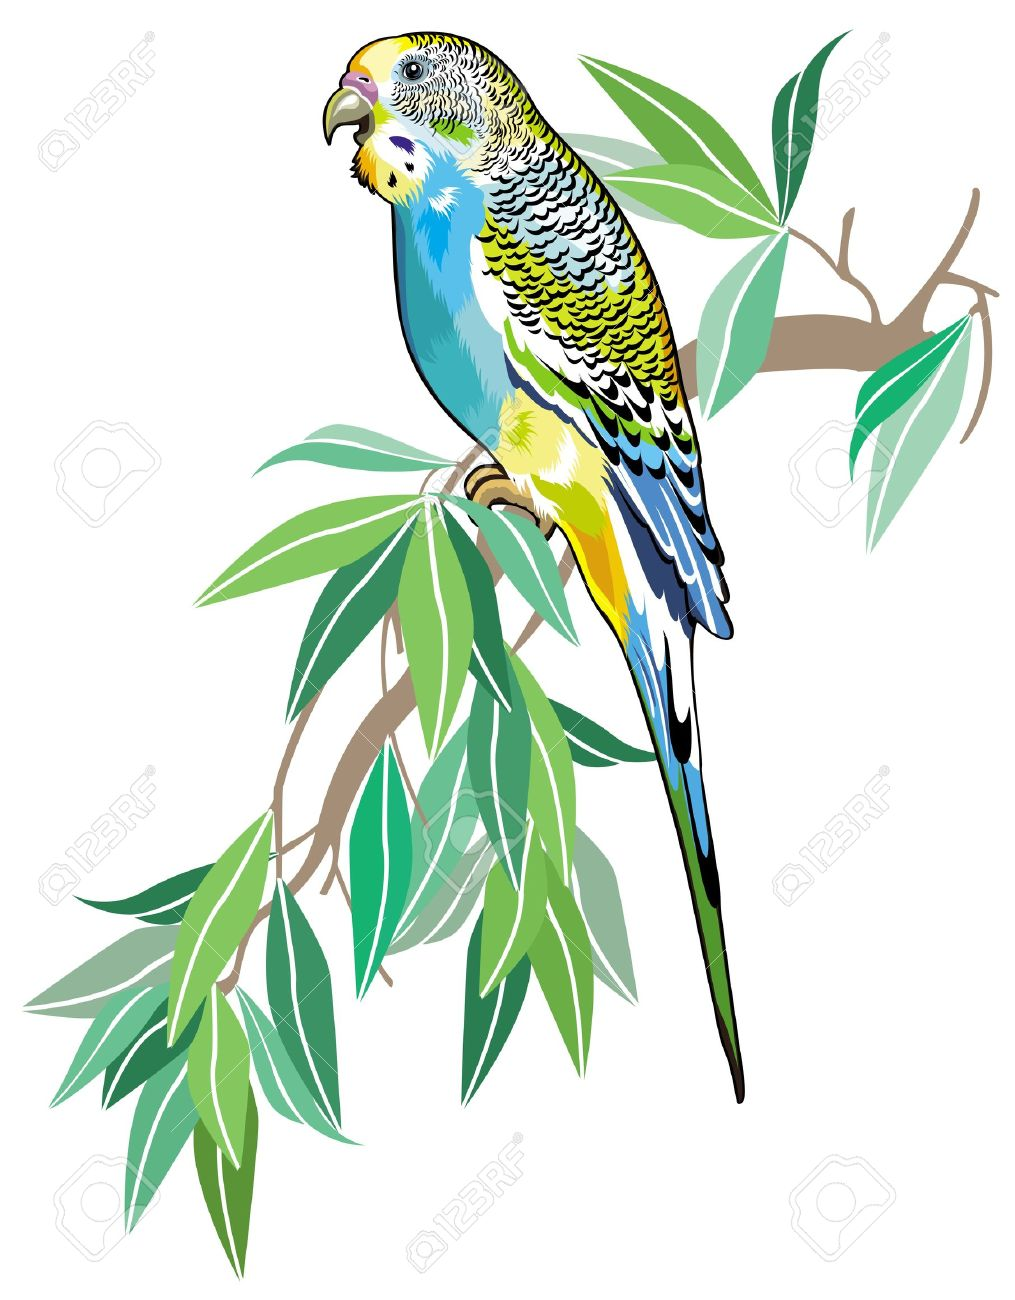 Budgerigars clipart #2, Download drawings